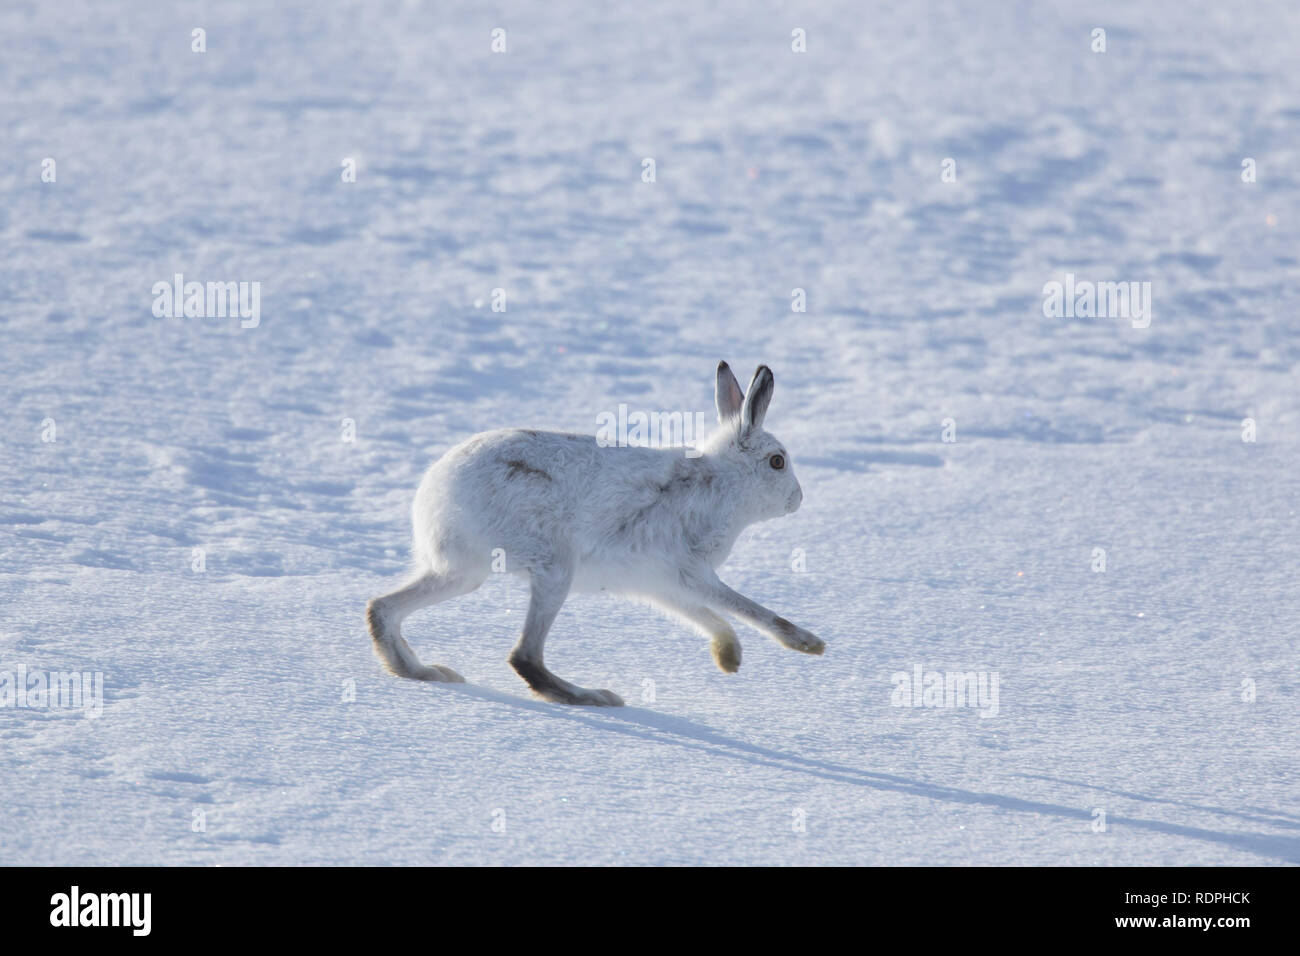 Mountain hare / Alpine hare / snow hare (Lepus timidus) in winter pelage running in the snow, Cairngorms National Park, Scotland, UK - Stock Image